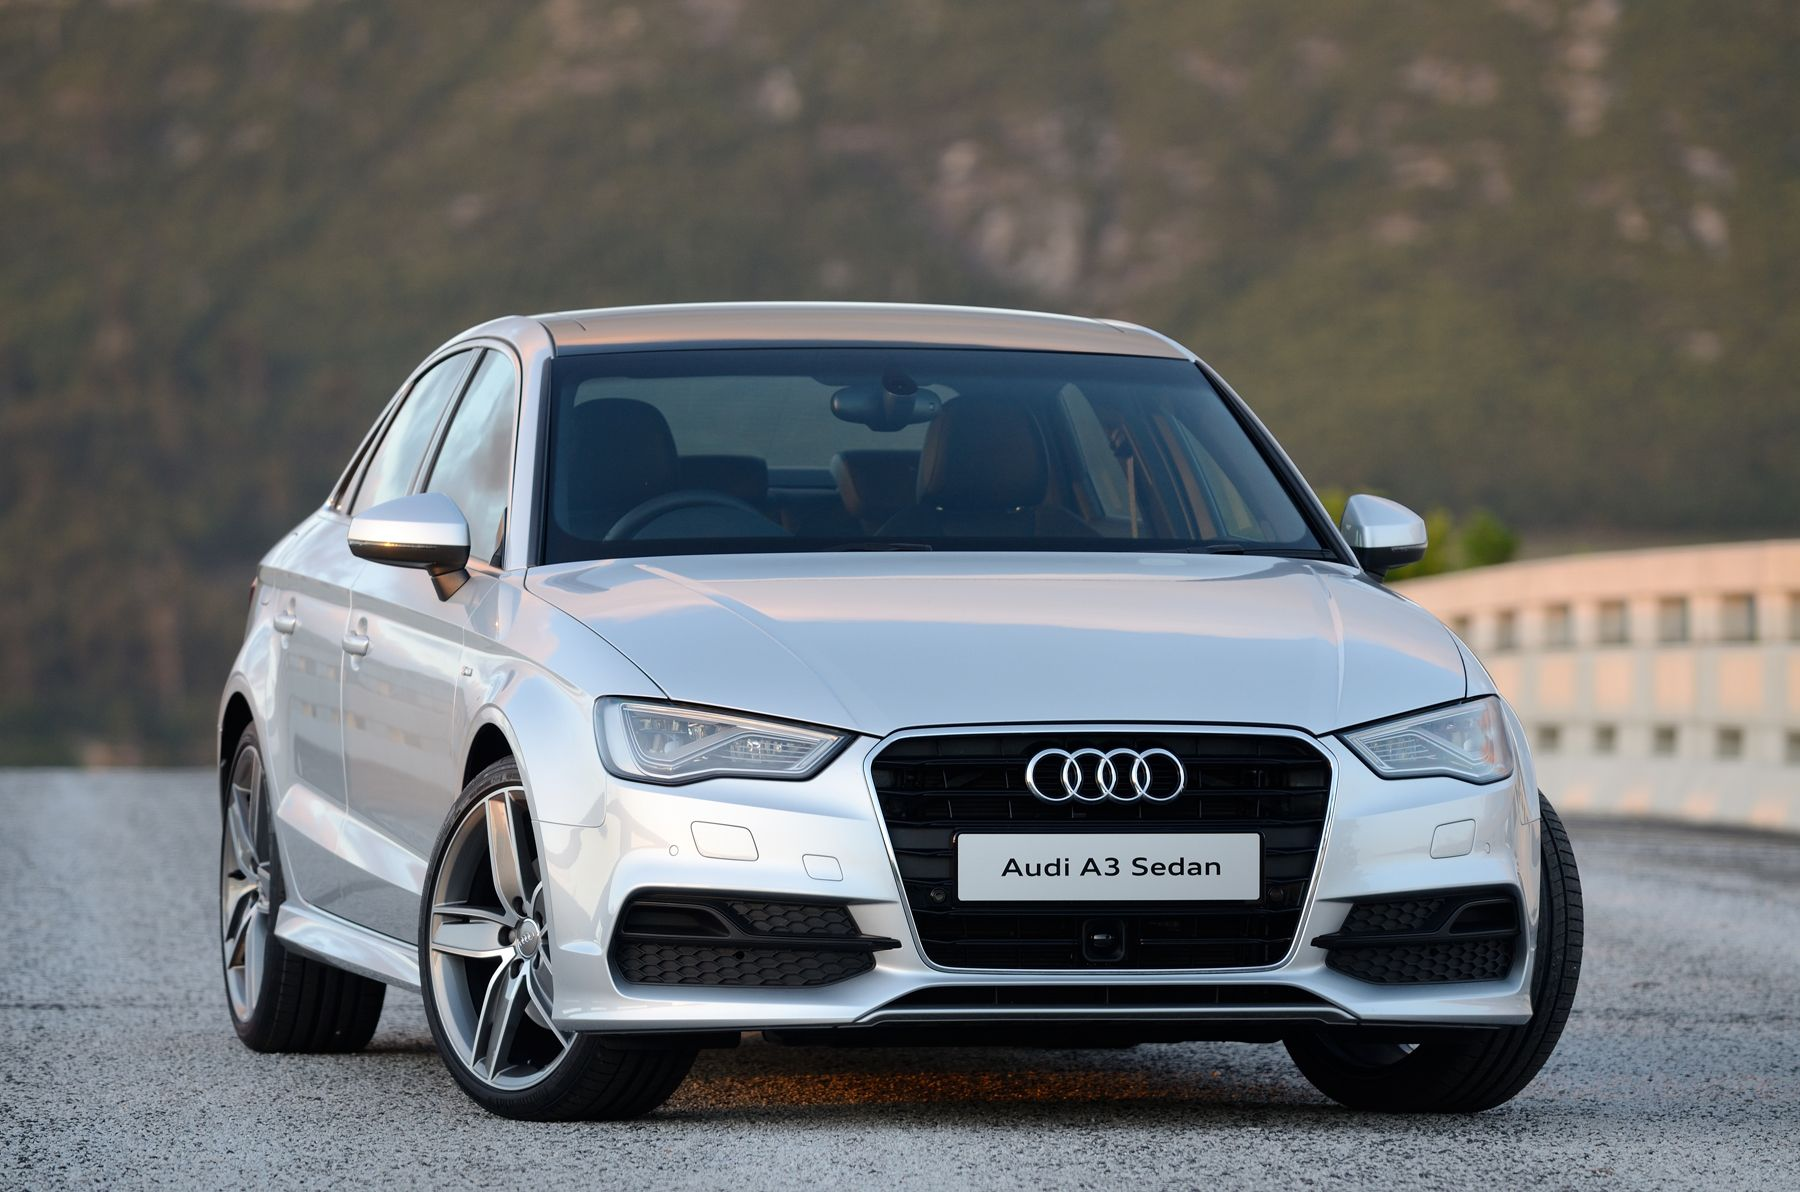 Audi A3 Sedan 1.4 TFSI S Tronic (2014): New Car Review